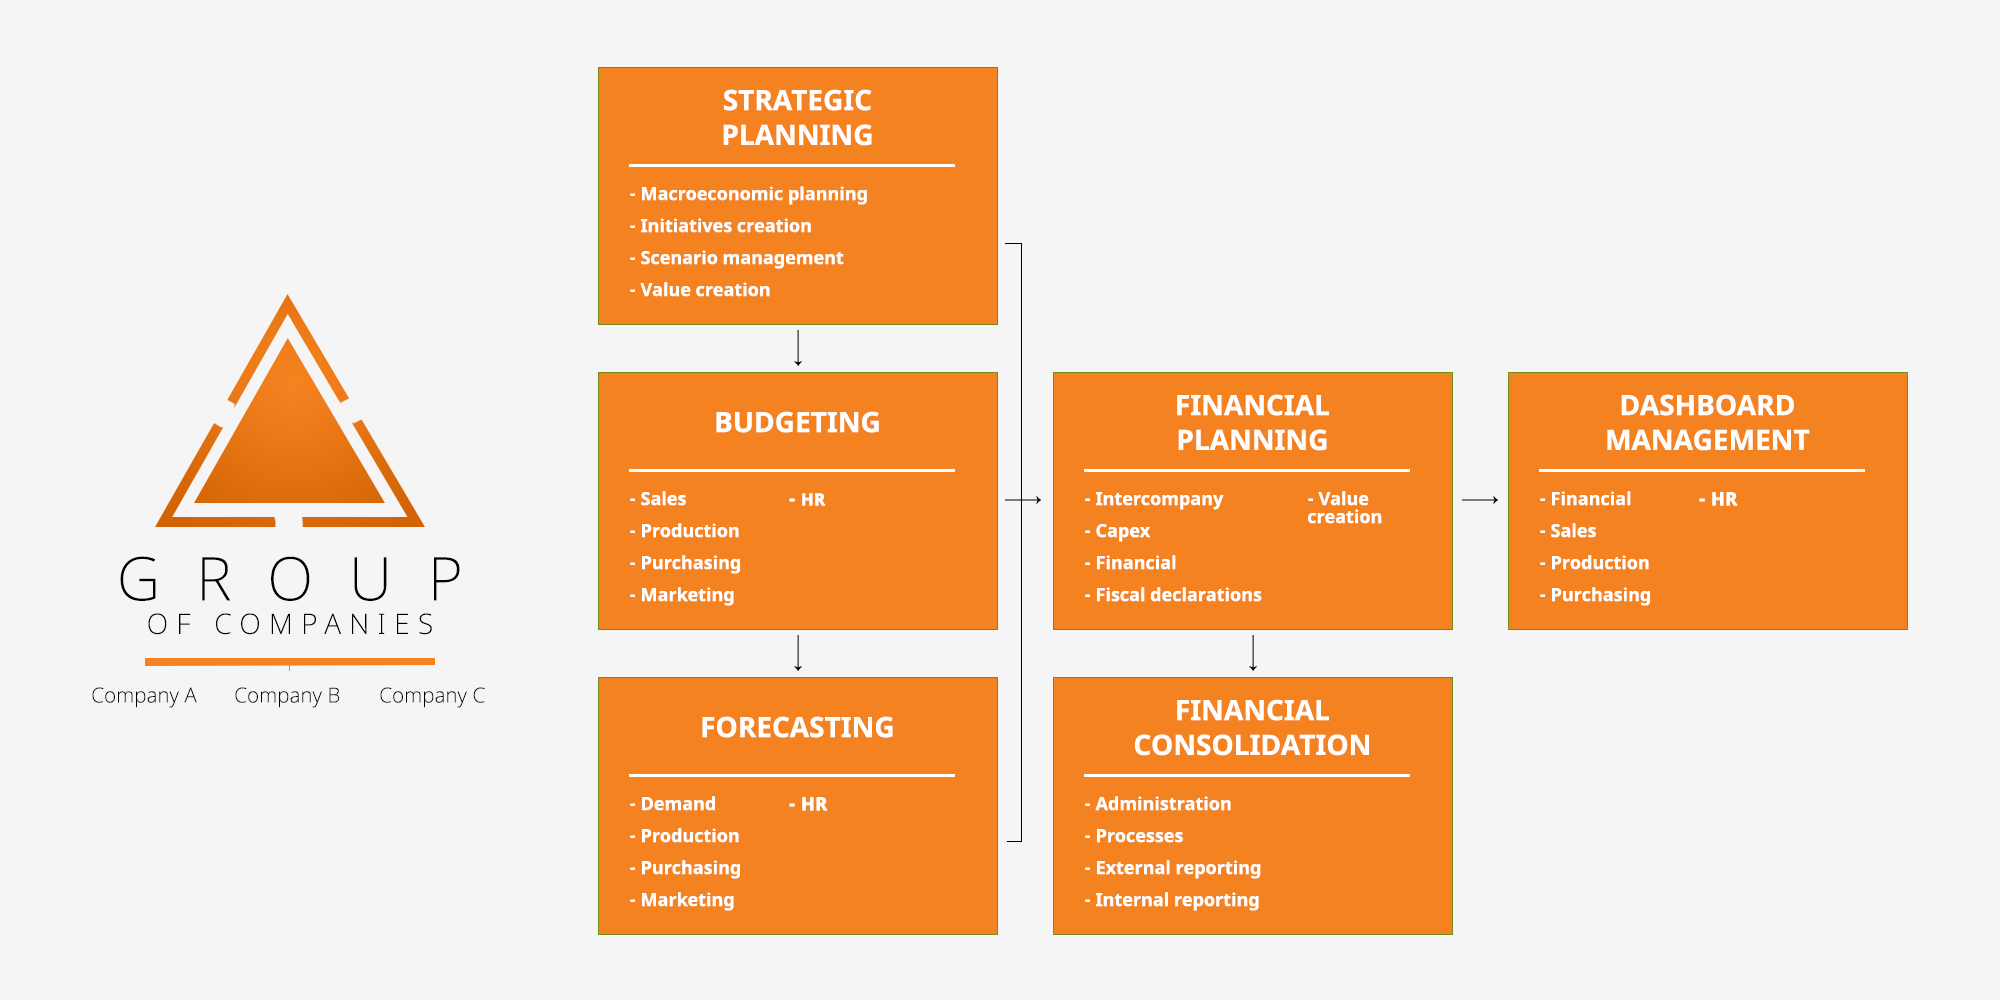 CPM-Corporate-Performance-Management-schema-1-f5f5f5 ENG